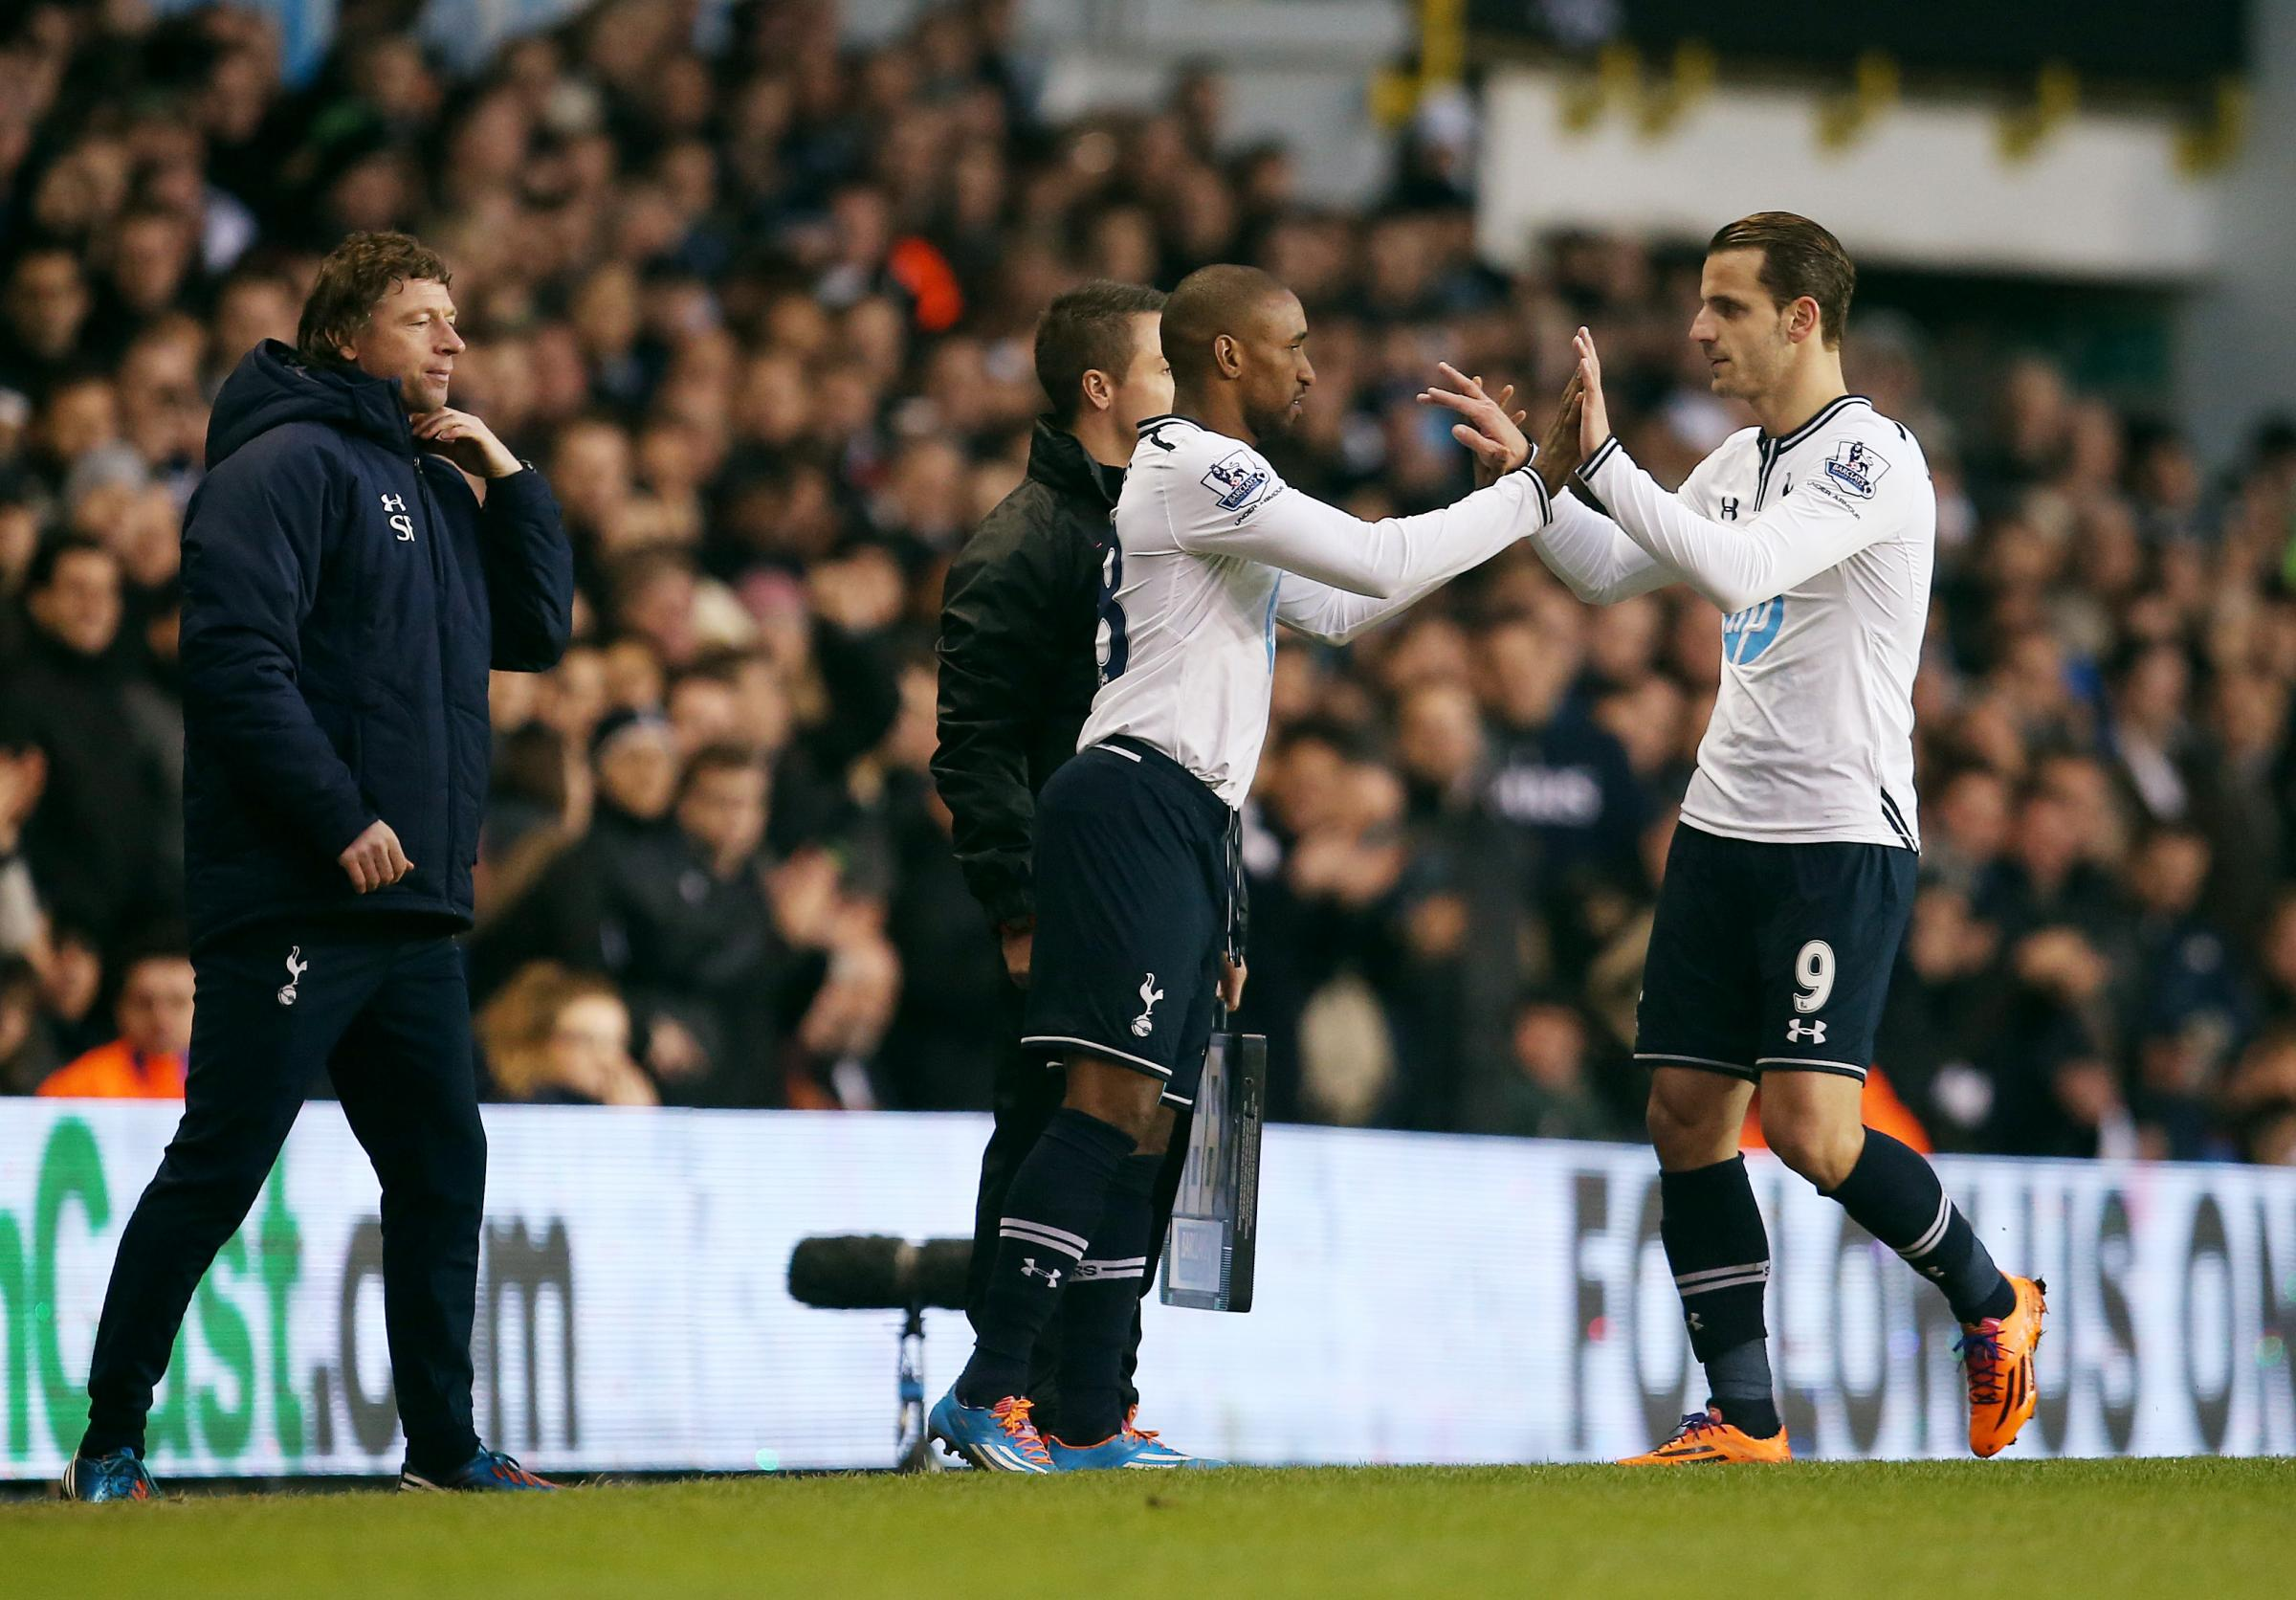 Jermain Defoe capped a solid second half performance for Spurs when he made it 2-0 after coming on for Roberto Soldado